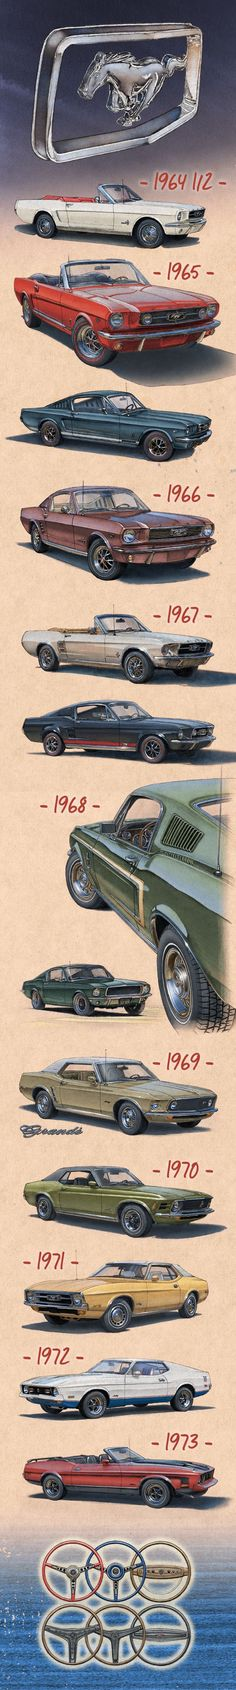 Muscle cars art ford mustangs ideas for 2019 Shelby Mustang, Shelby Gt 500, Mustang Fastback, Mustang Cars, Ford Mustang Classic, Ford Classic Cars, Ford Mustangs, Pickup Auto, Carros Vw